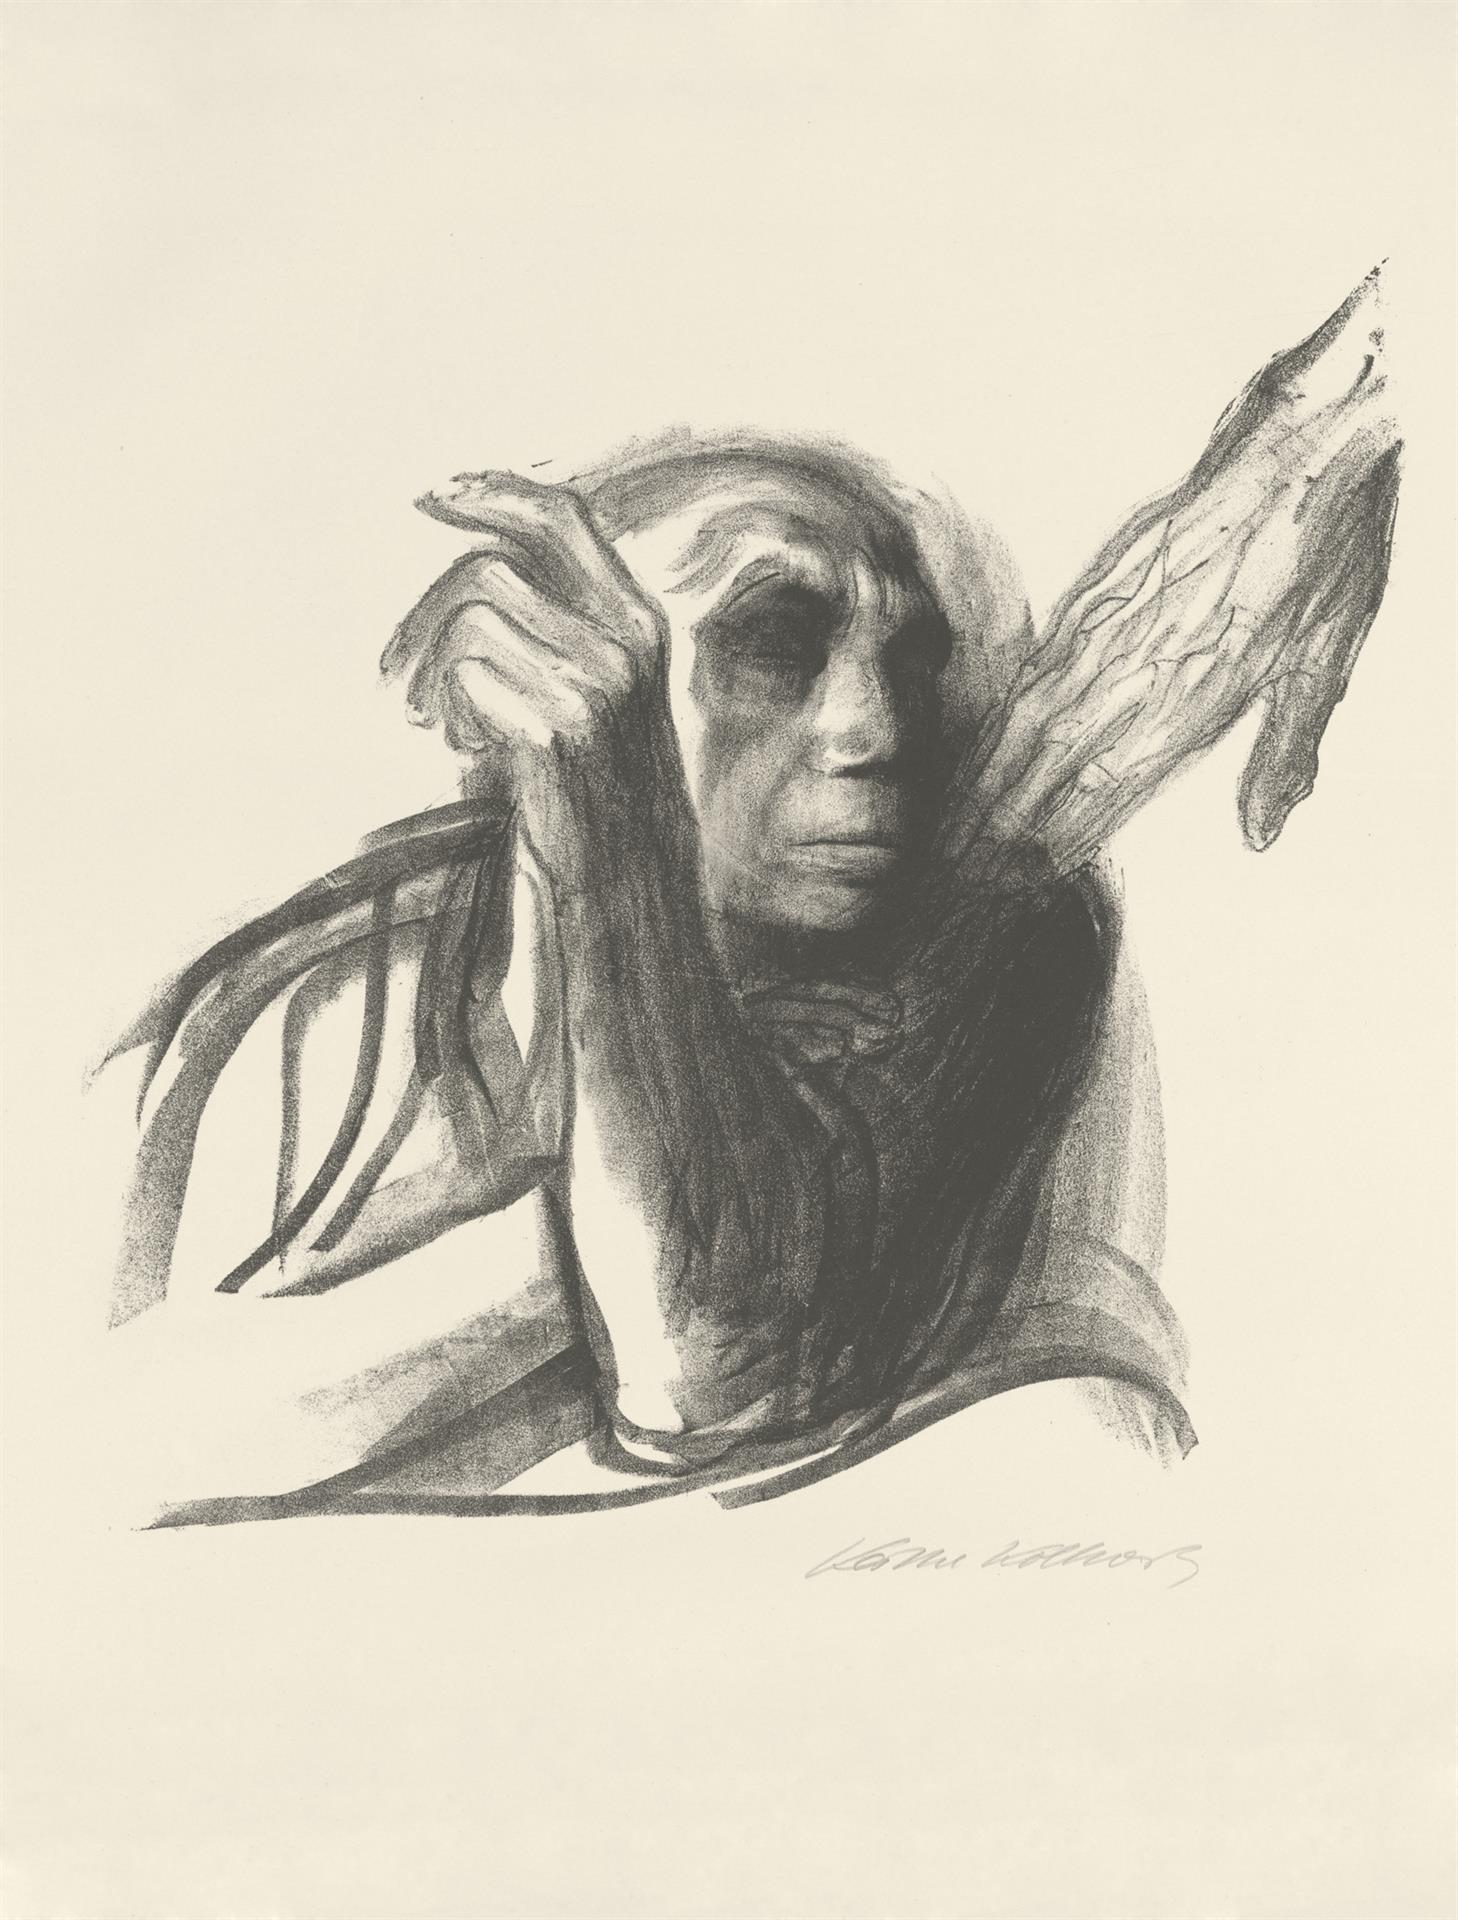 Käthe Kollwitz, Call of Death, sheet 8 of the series »Death«, 1937, crayon lithograph, Kn 269 b, Cologne Kollwitz Collection © Käthe Kollwitz Museum Köln